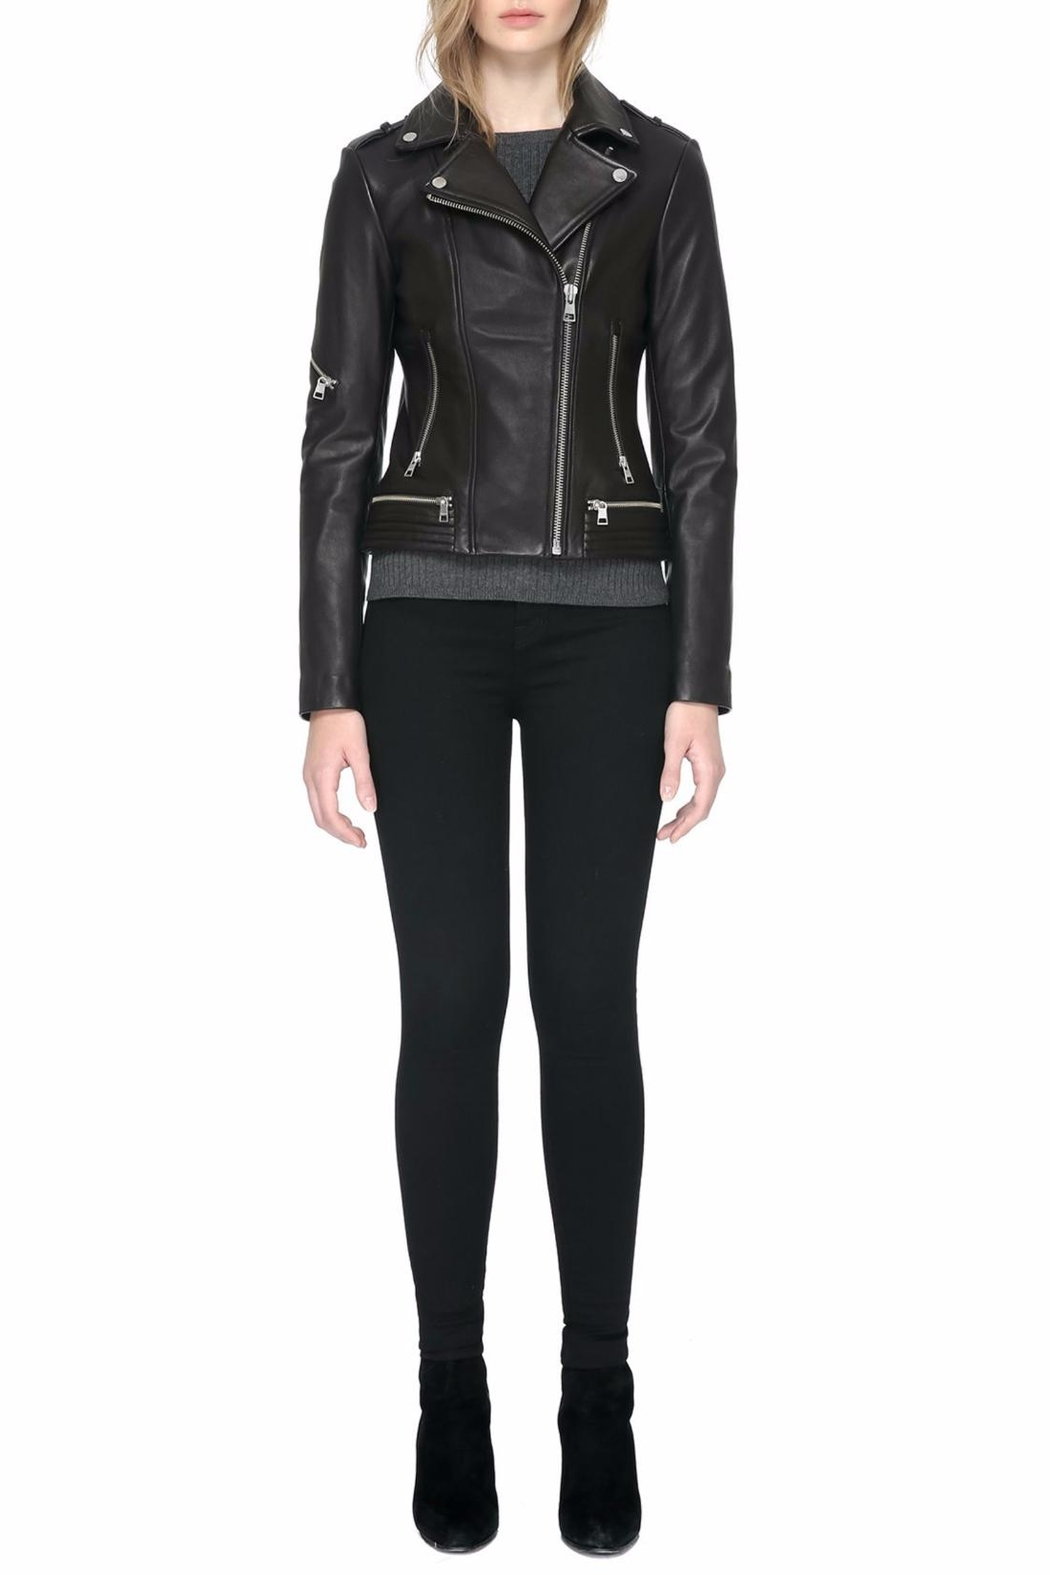 Soia & Kyo Jasmina Leather Jacket - Front Full Image